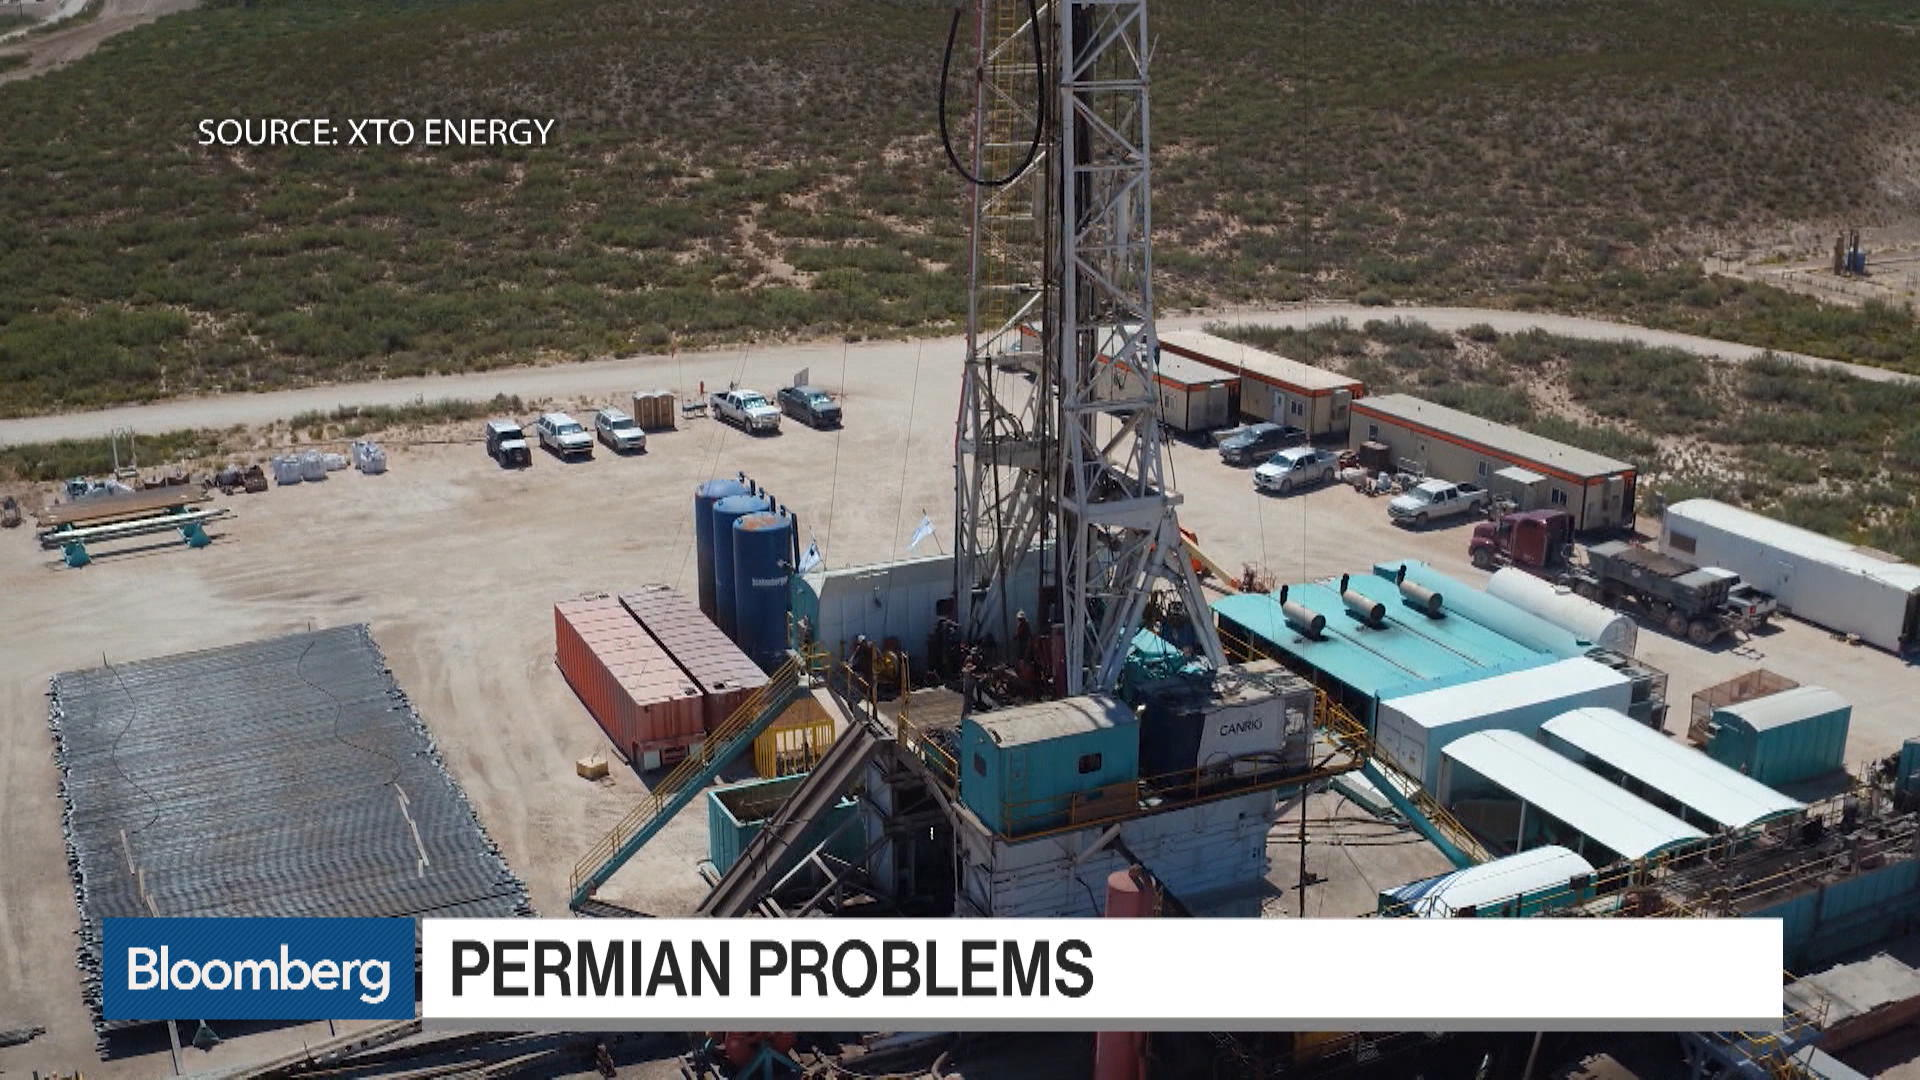 Permian Basin Is Growing Into the Largest Oil Patch in the